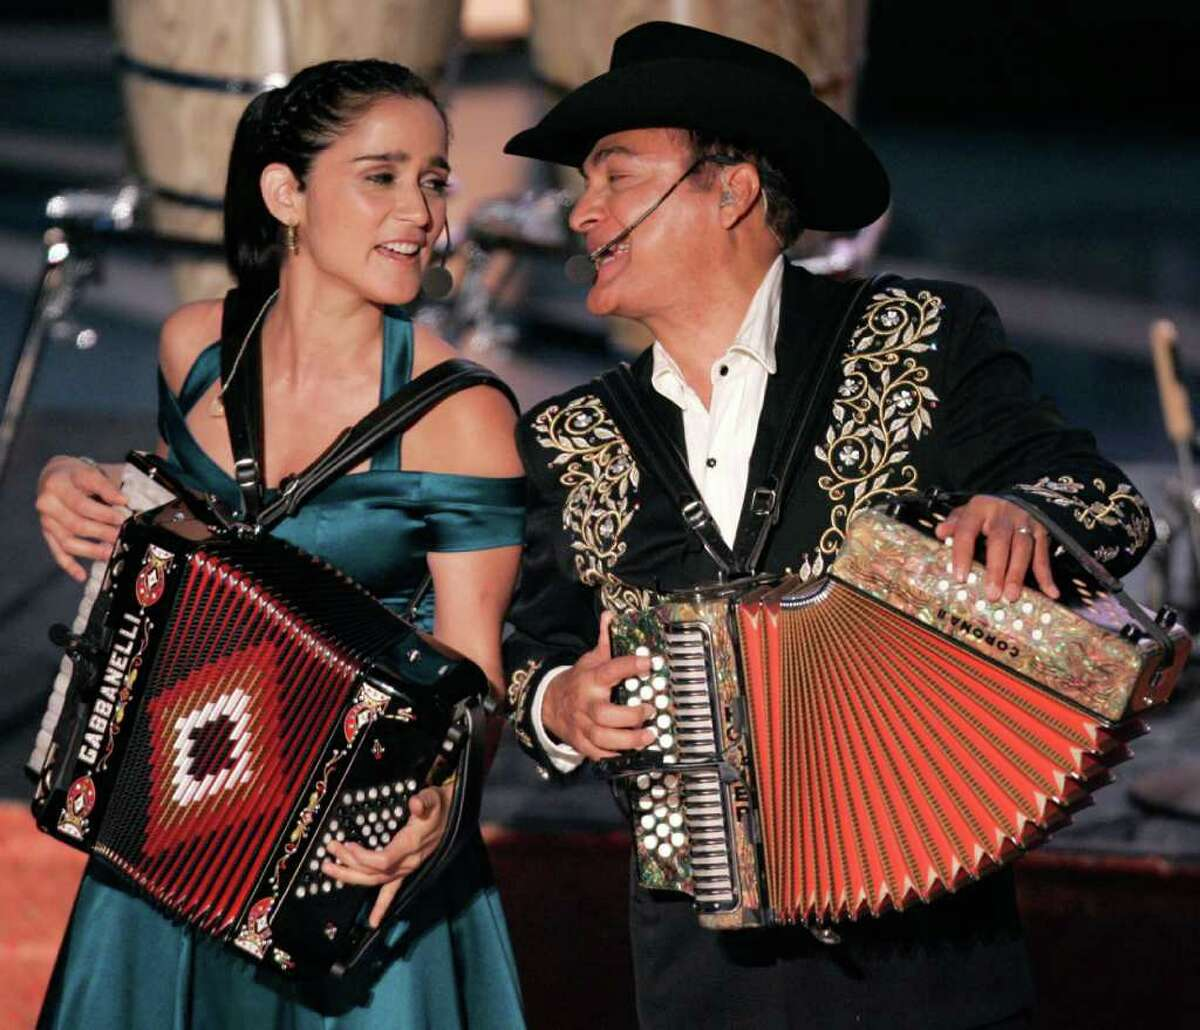 Julieta Vengas (L) and Jorge Hernandez from Los Tigres Del Norte perform at the sixth annual Latin Grammy Awards in Los Angeles November 3, 2005. REUTERS/Mike Blake